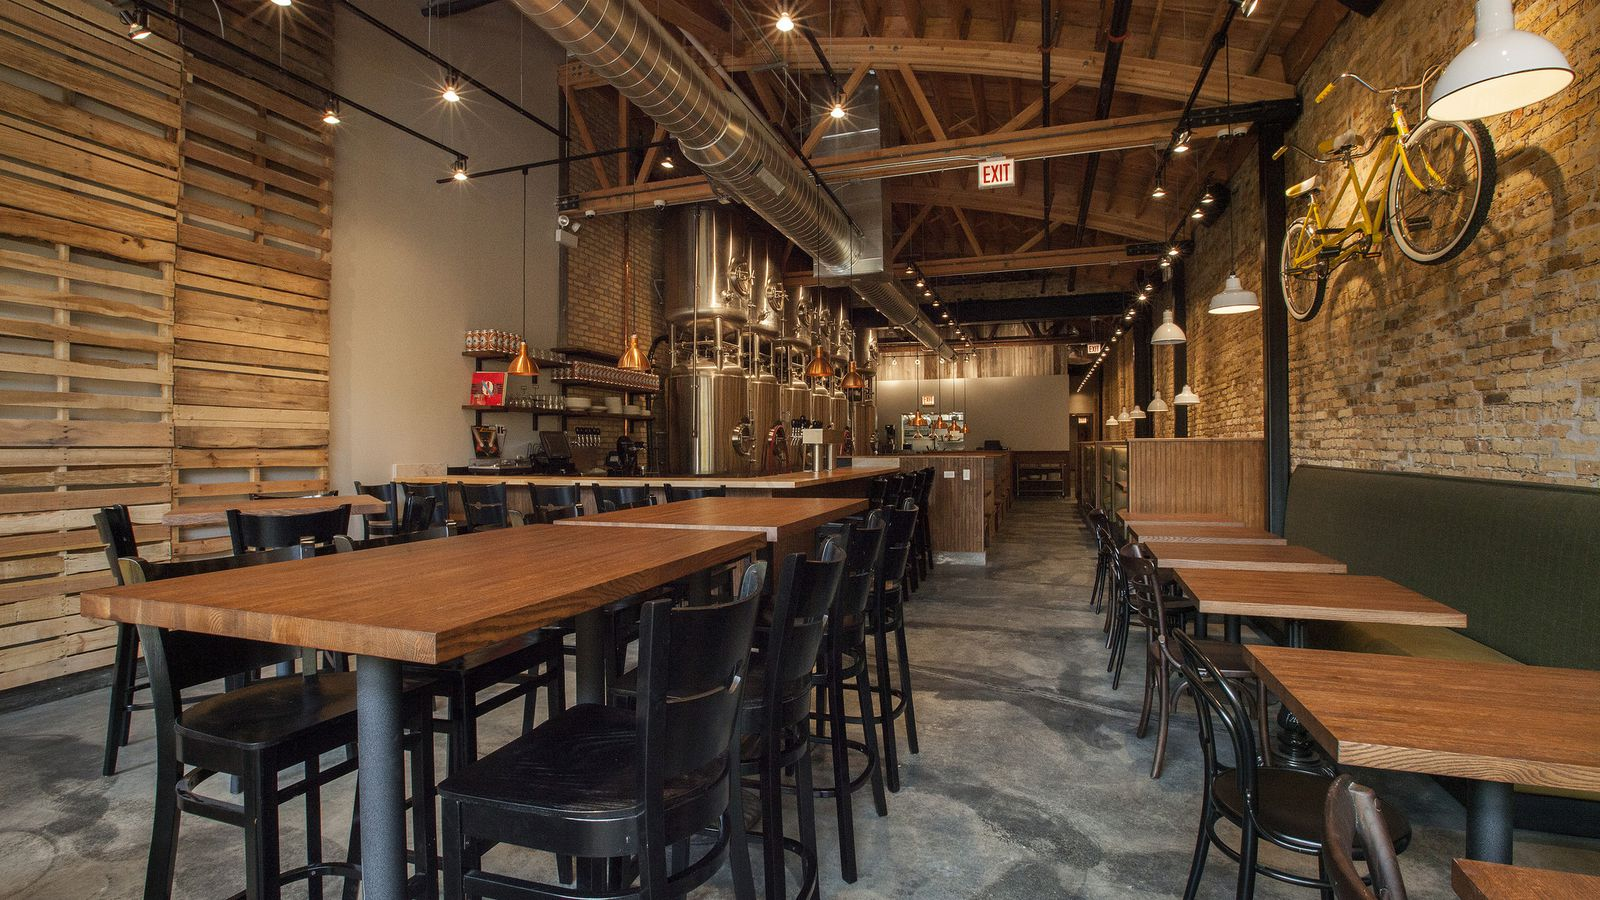 Corridor Brewery Amp Provisions Chicago Ill Beer Menu - HD1600×900